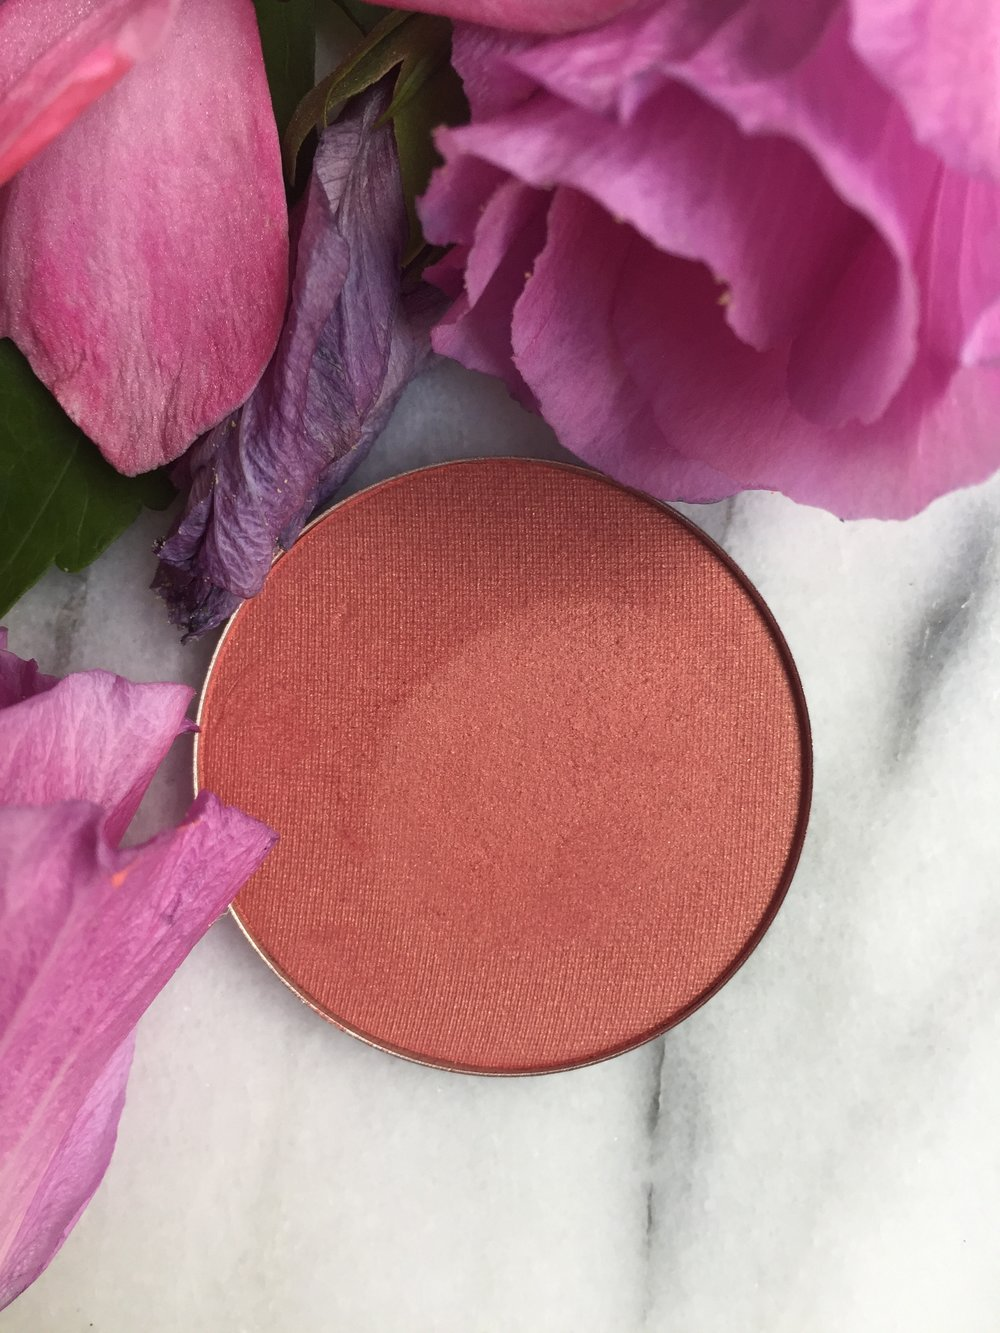 Mauve Blush | Makeup Geek Covet